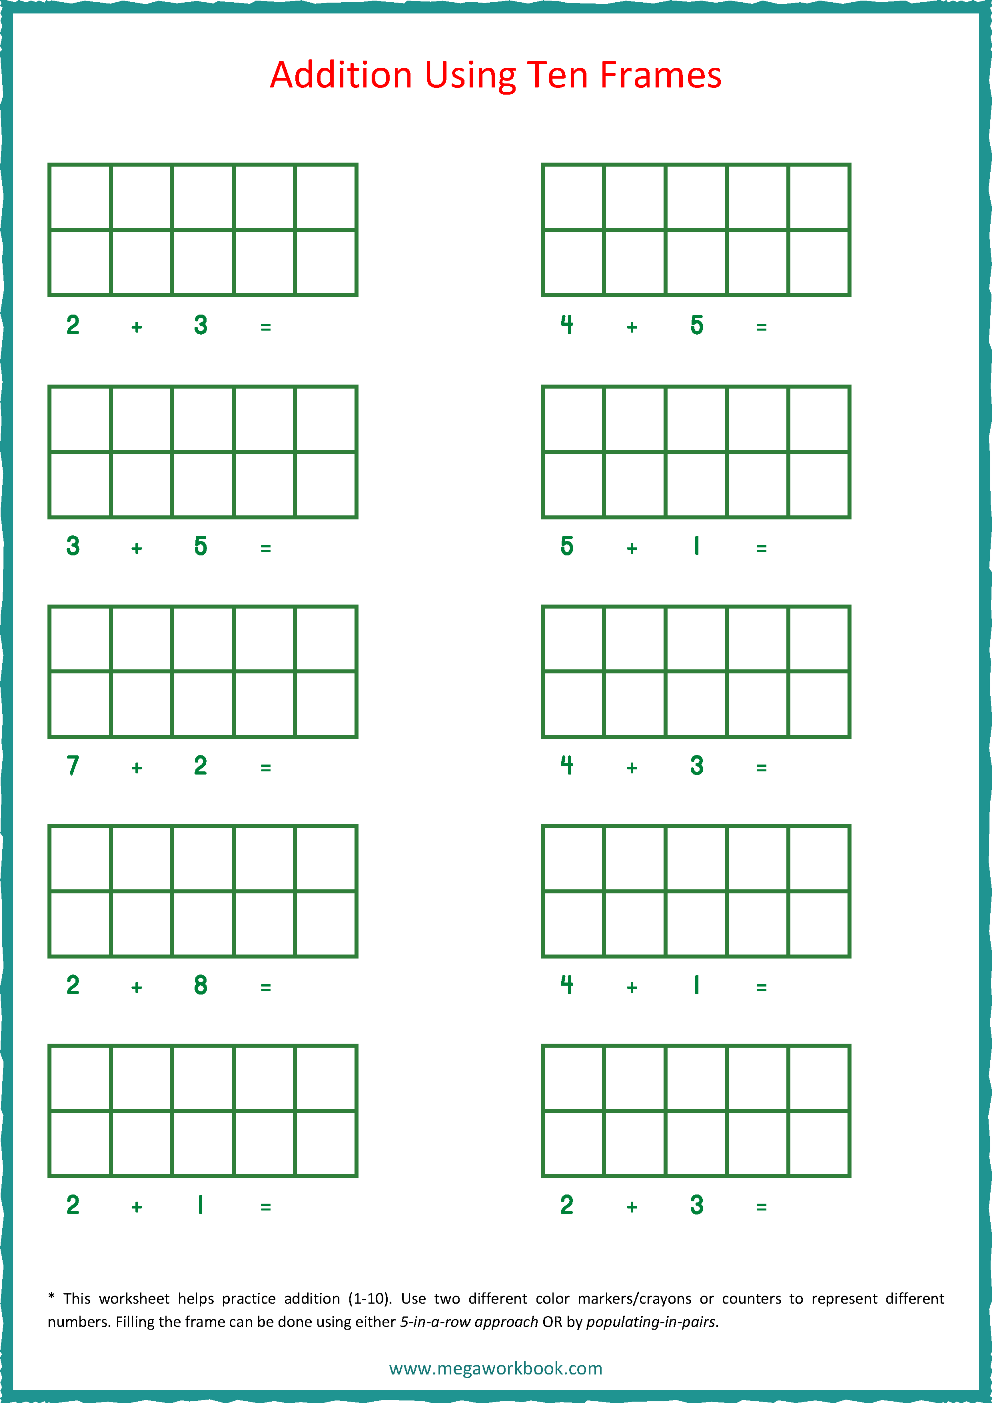 hight resolution of Ten Frame Worksheets - Ten Frames - 10 Frames (Counting